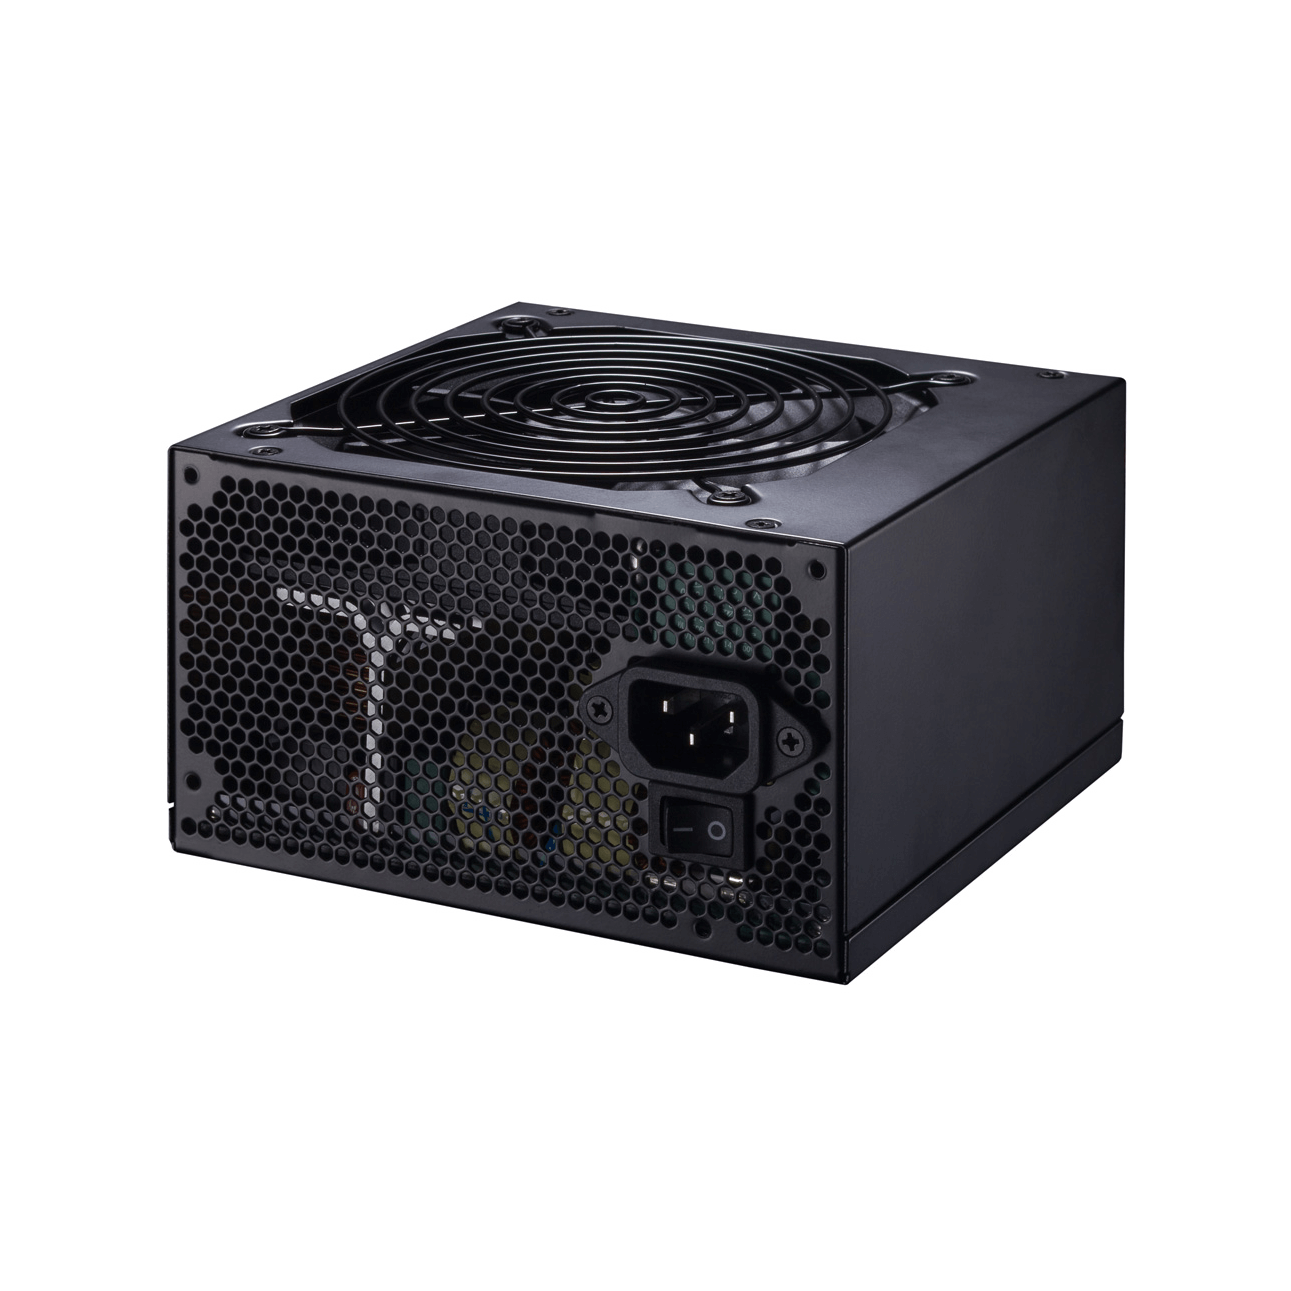 KRPW-AK750W/88+ 80PLUS SILVER認証 ATX12V/EPS12V対応 PC電源